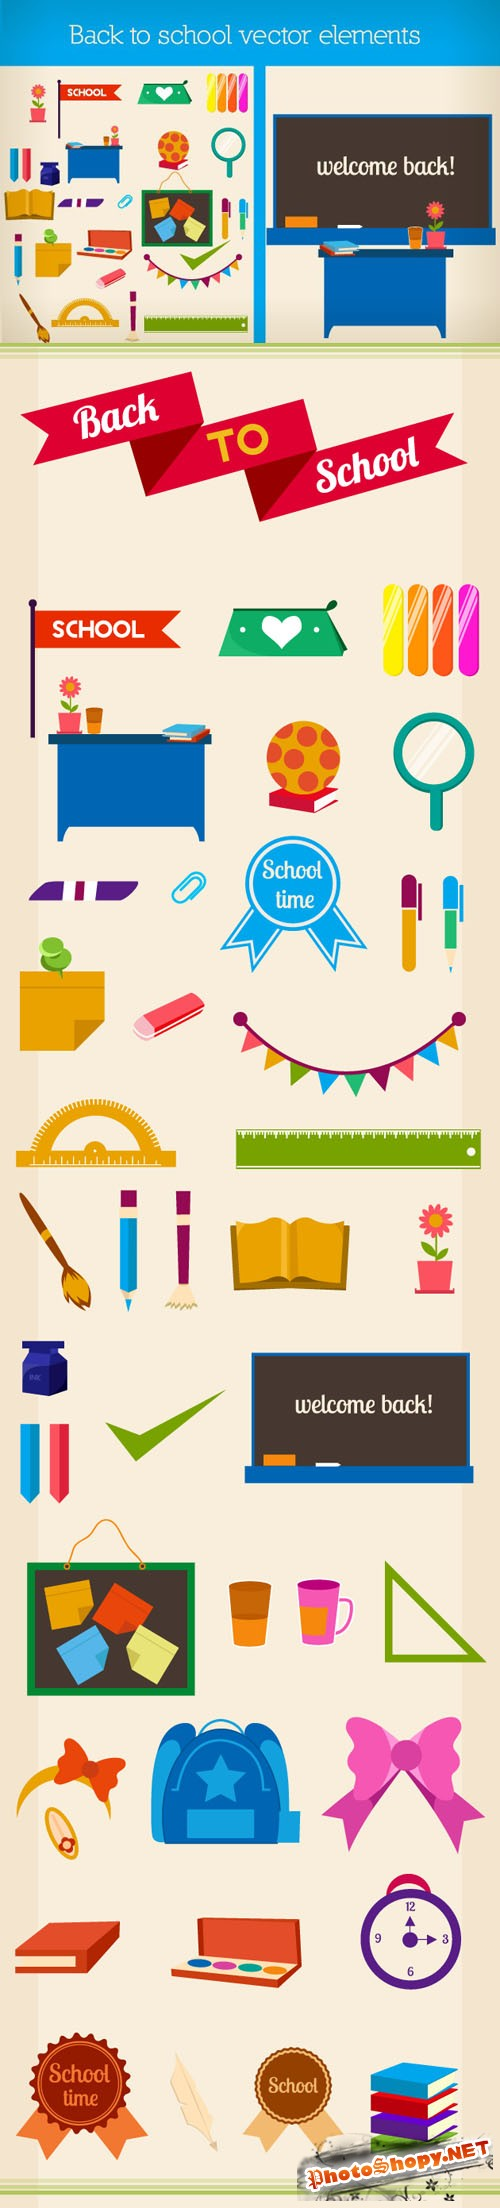 Designtnt - Back to School Vector Elements